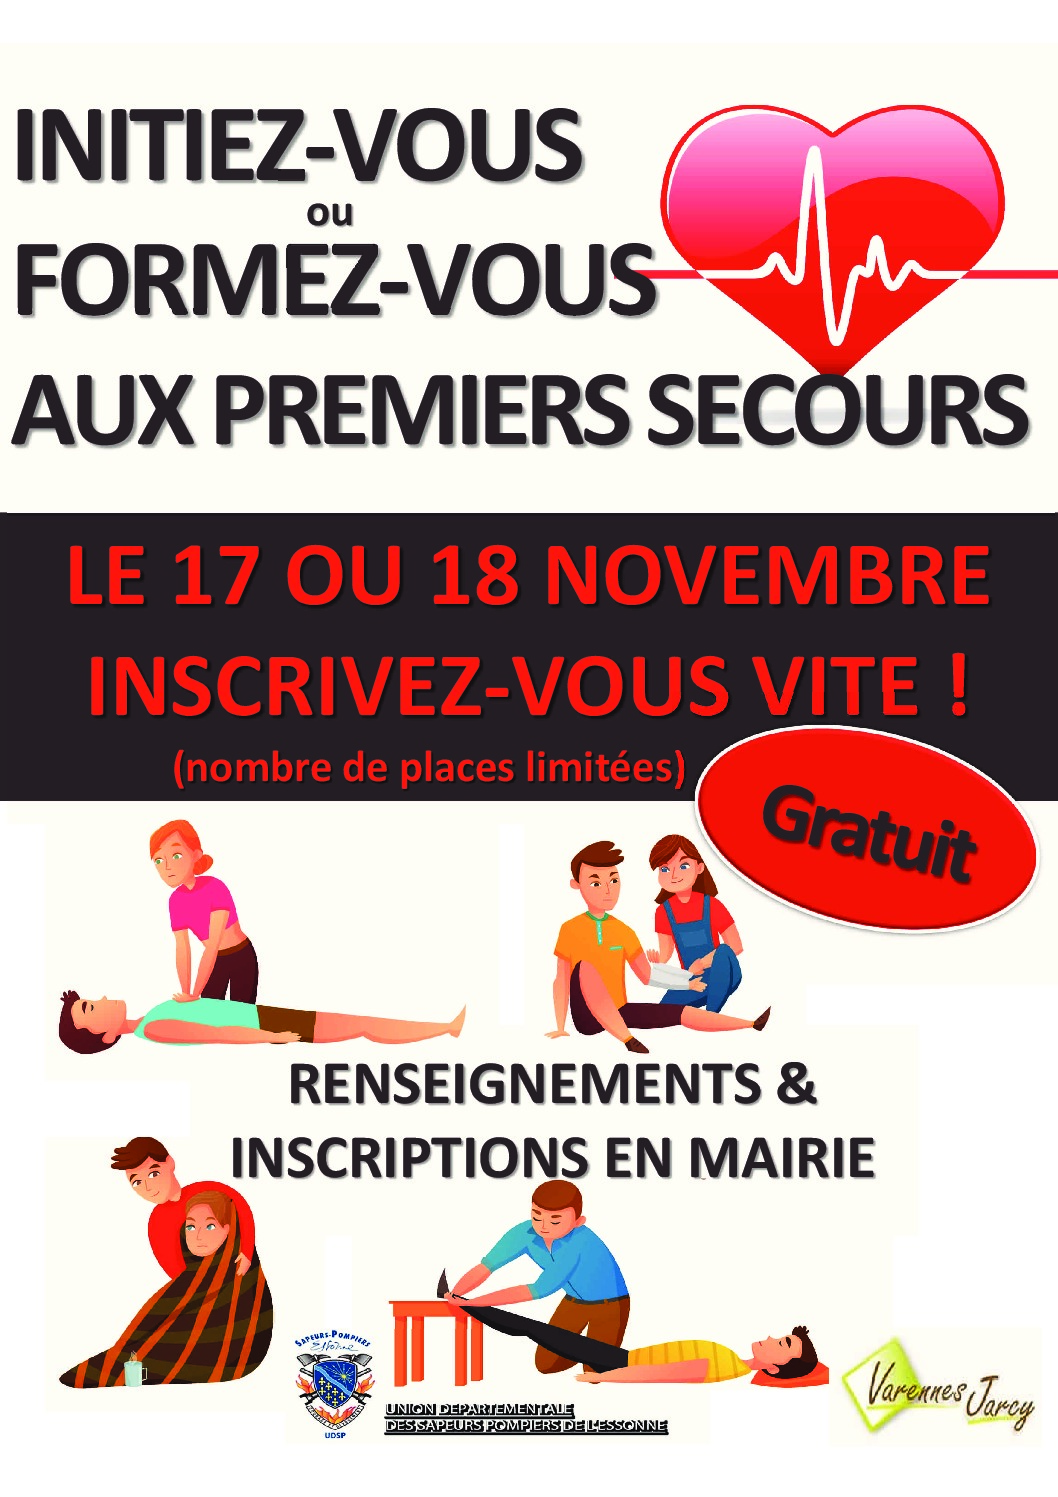 thumbnail of 1ers secours_23.10.2018